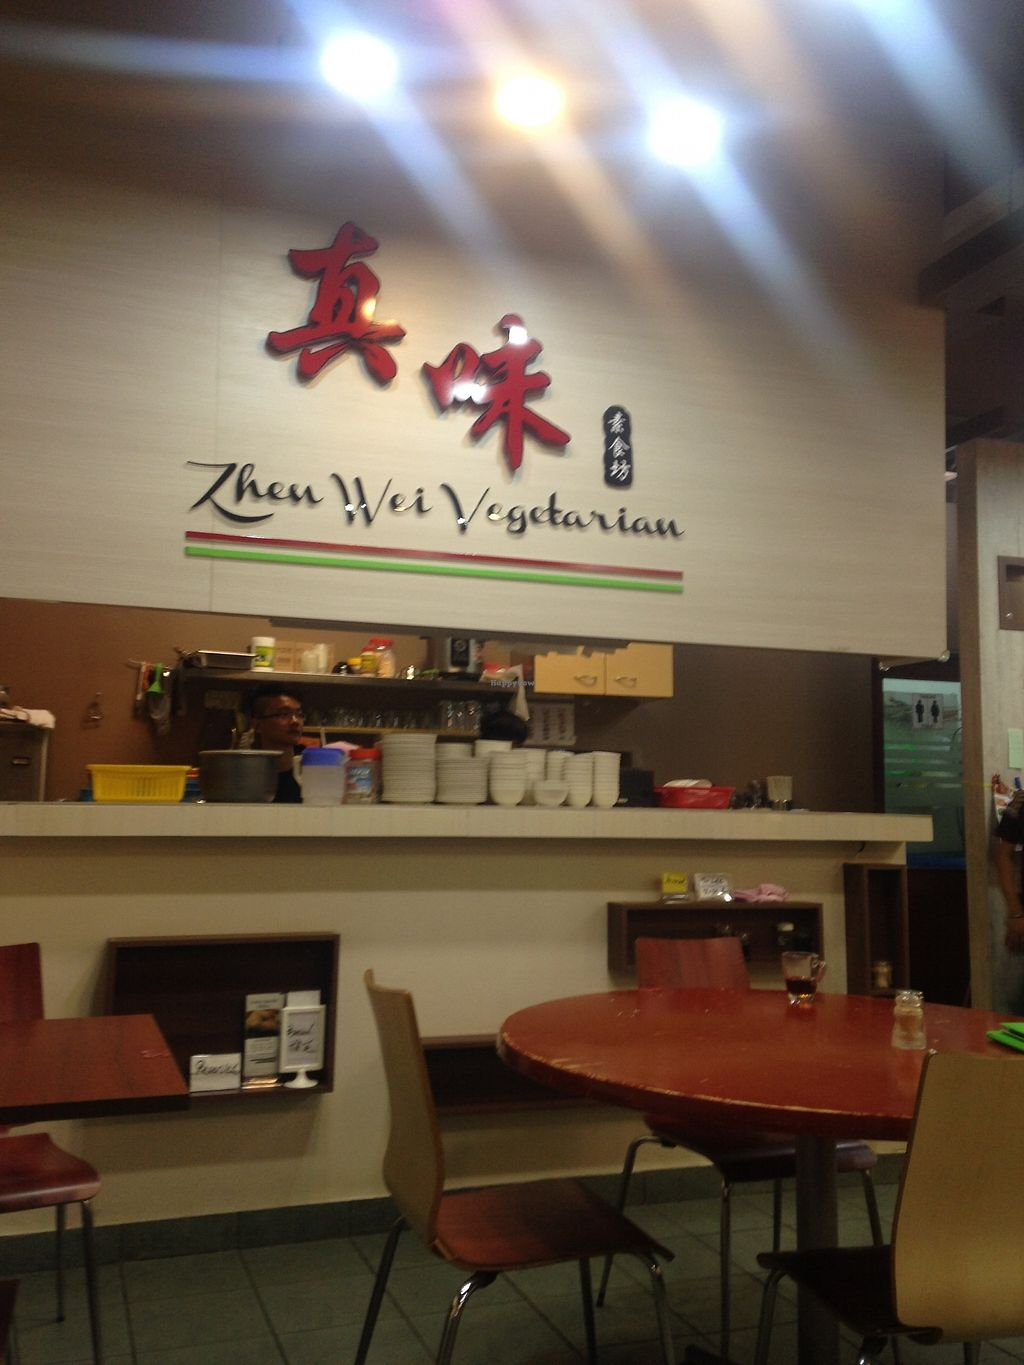 "Photo of Zhen Wei Vegetarian House  by <a href=""/members/profile/harryang"">harryang</a> <br/>Zhen Wei <br/> November 25, 2017  - <a href='/contact/abuse/image/105814/328863'>Report</a>"